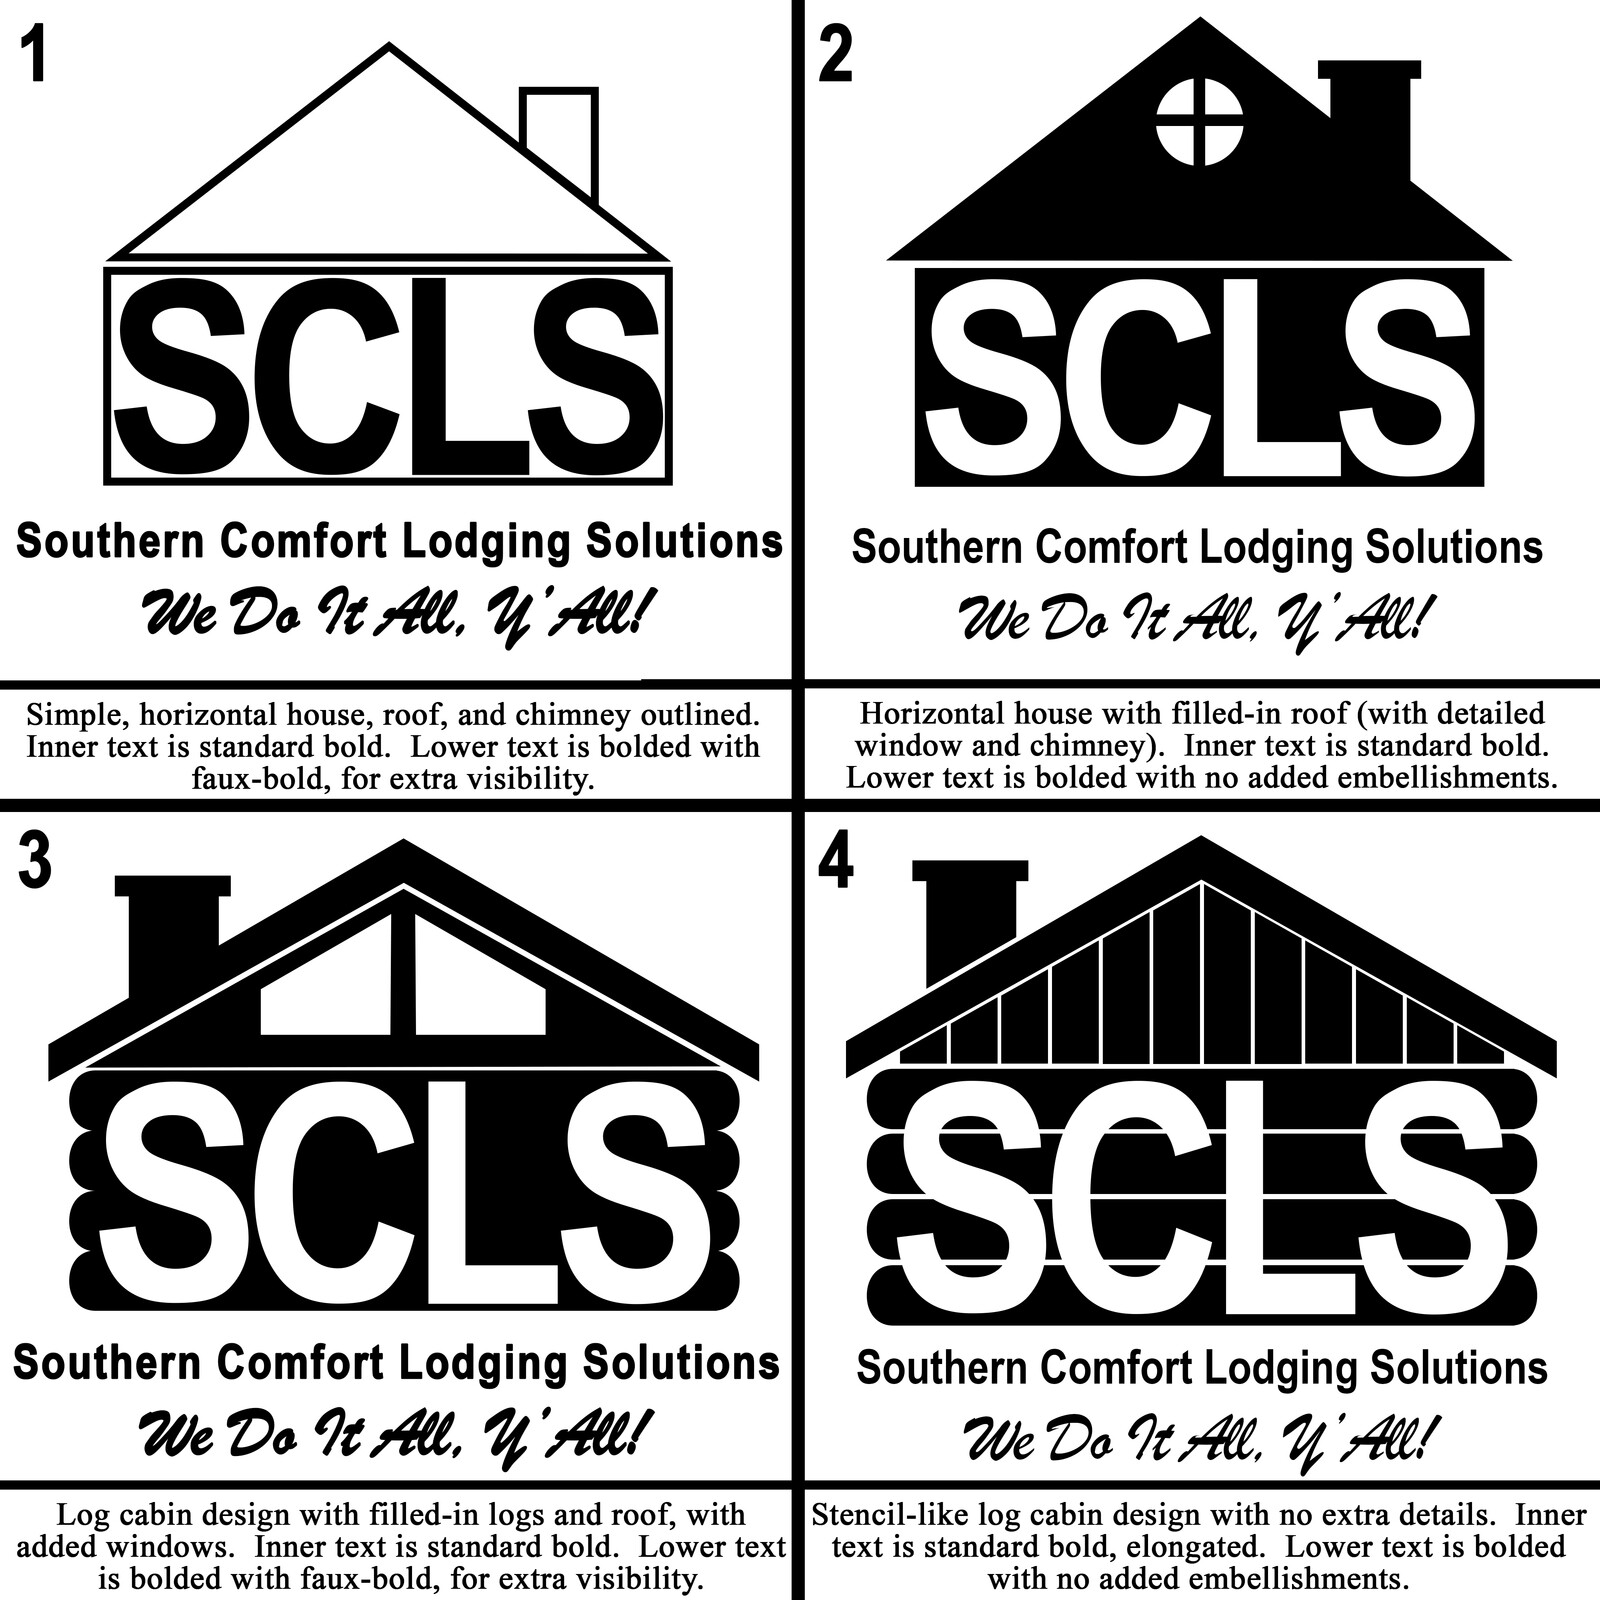 The first 4 concept designs for the SCLS logo